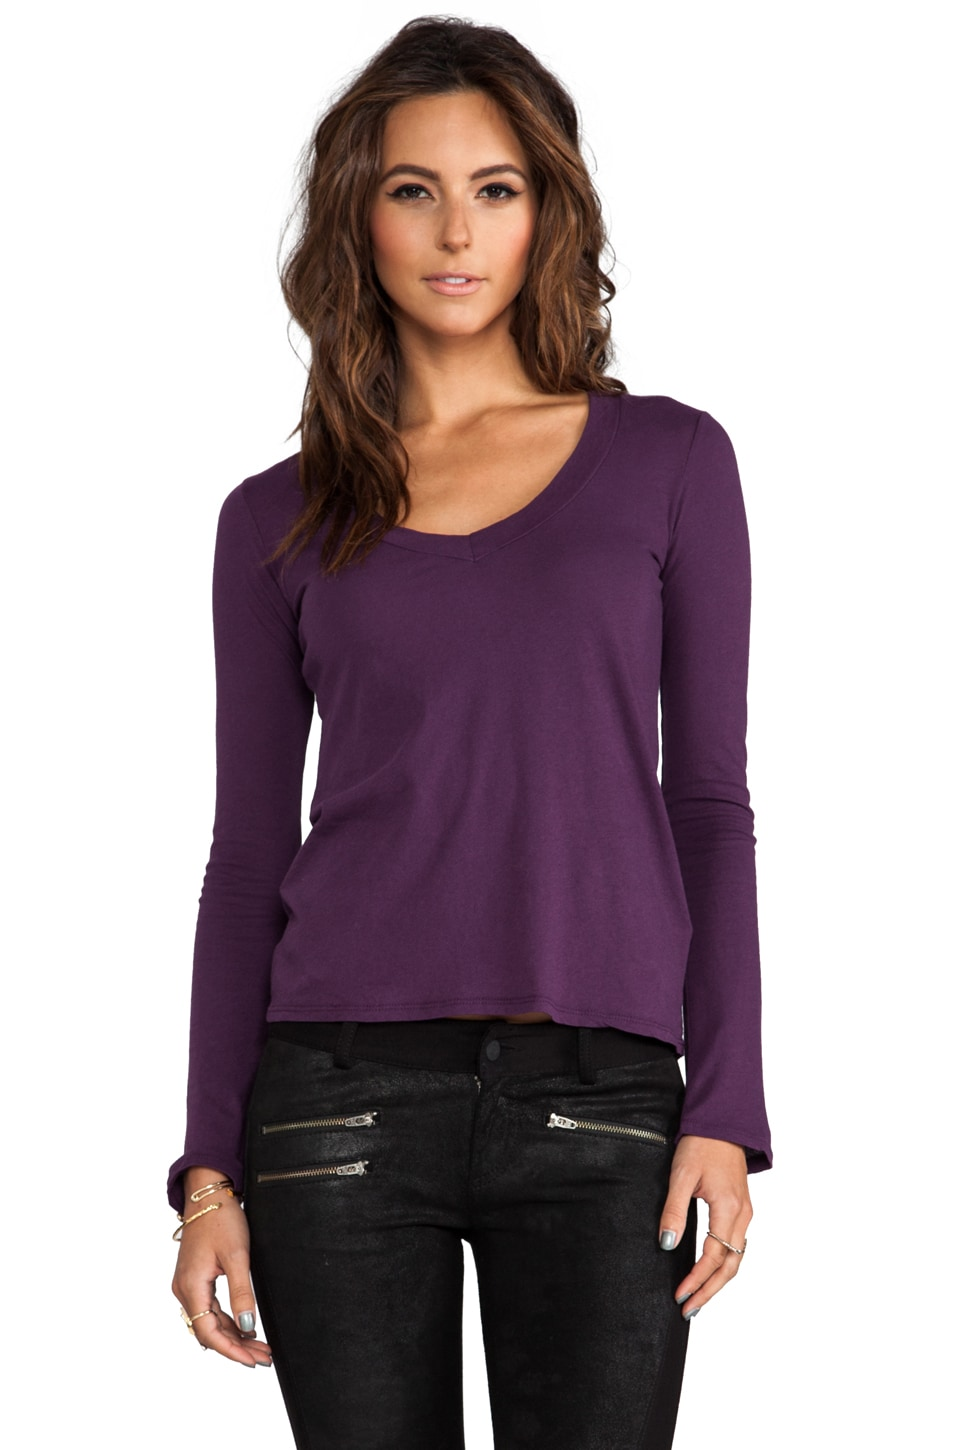 James Perse Long Sleeve V Neck in Wild Plum